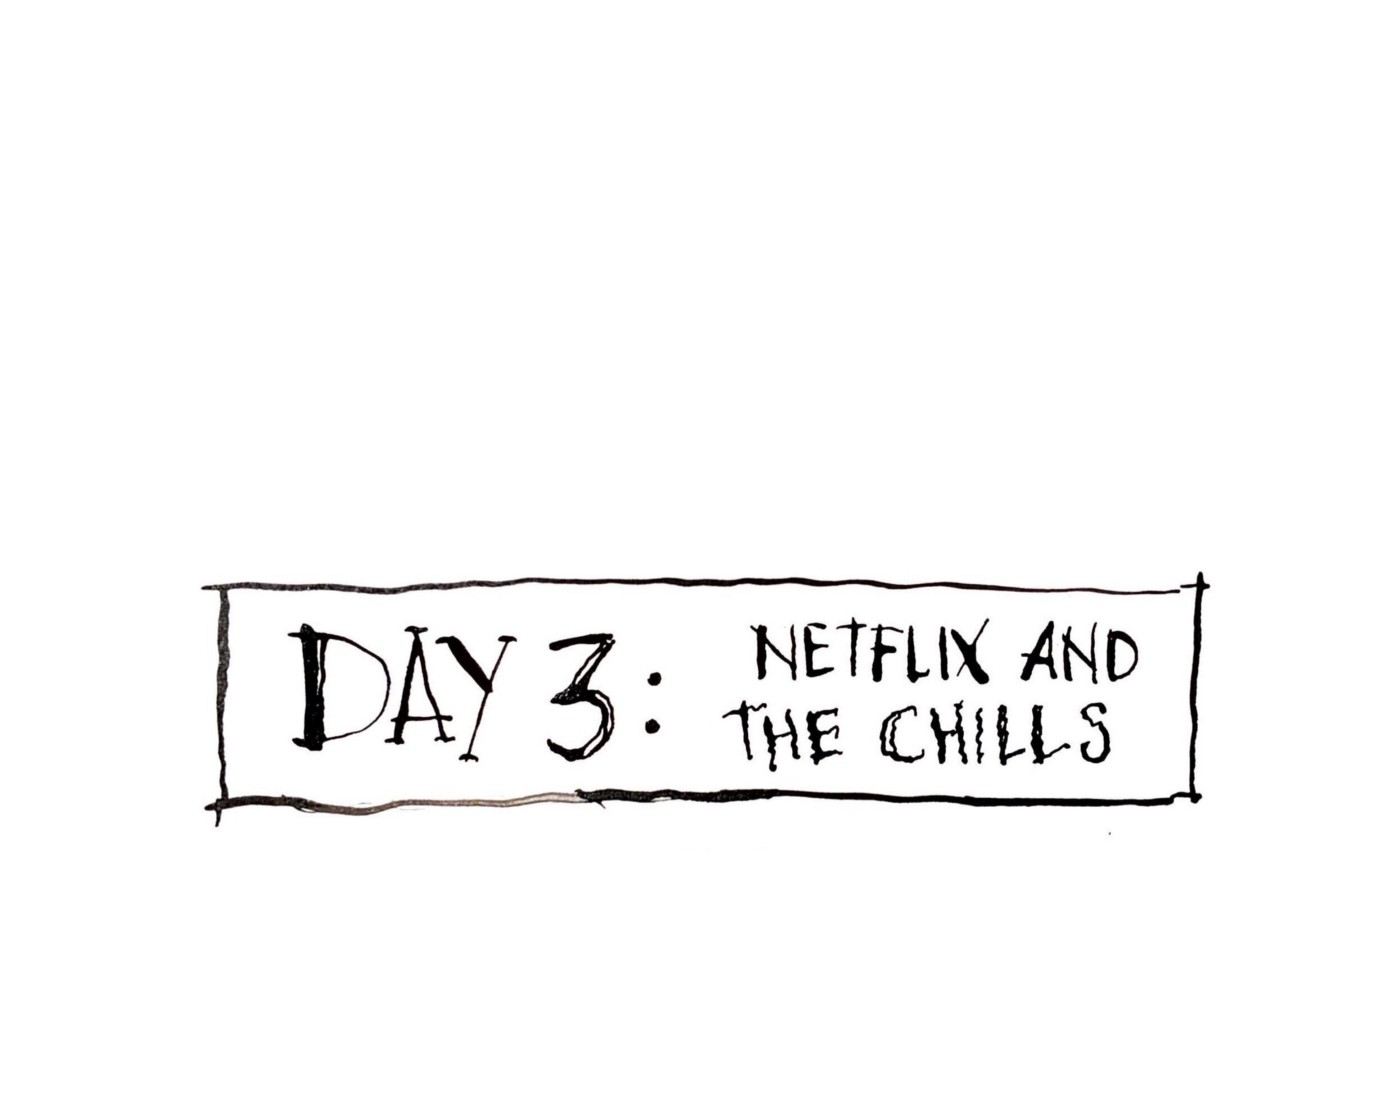 DAY 3: Netflix and The Chills